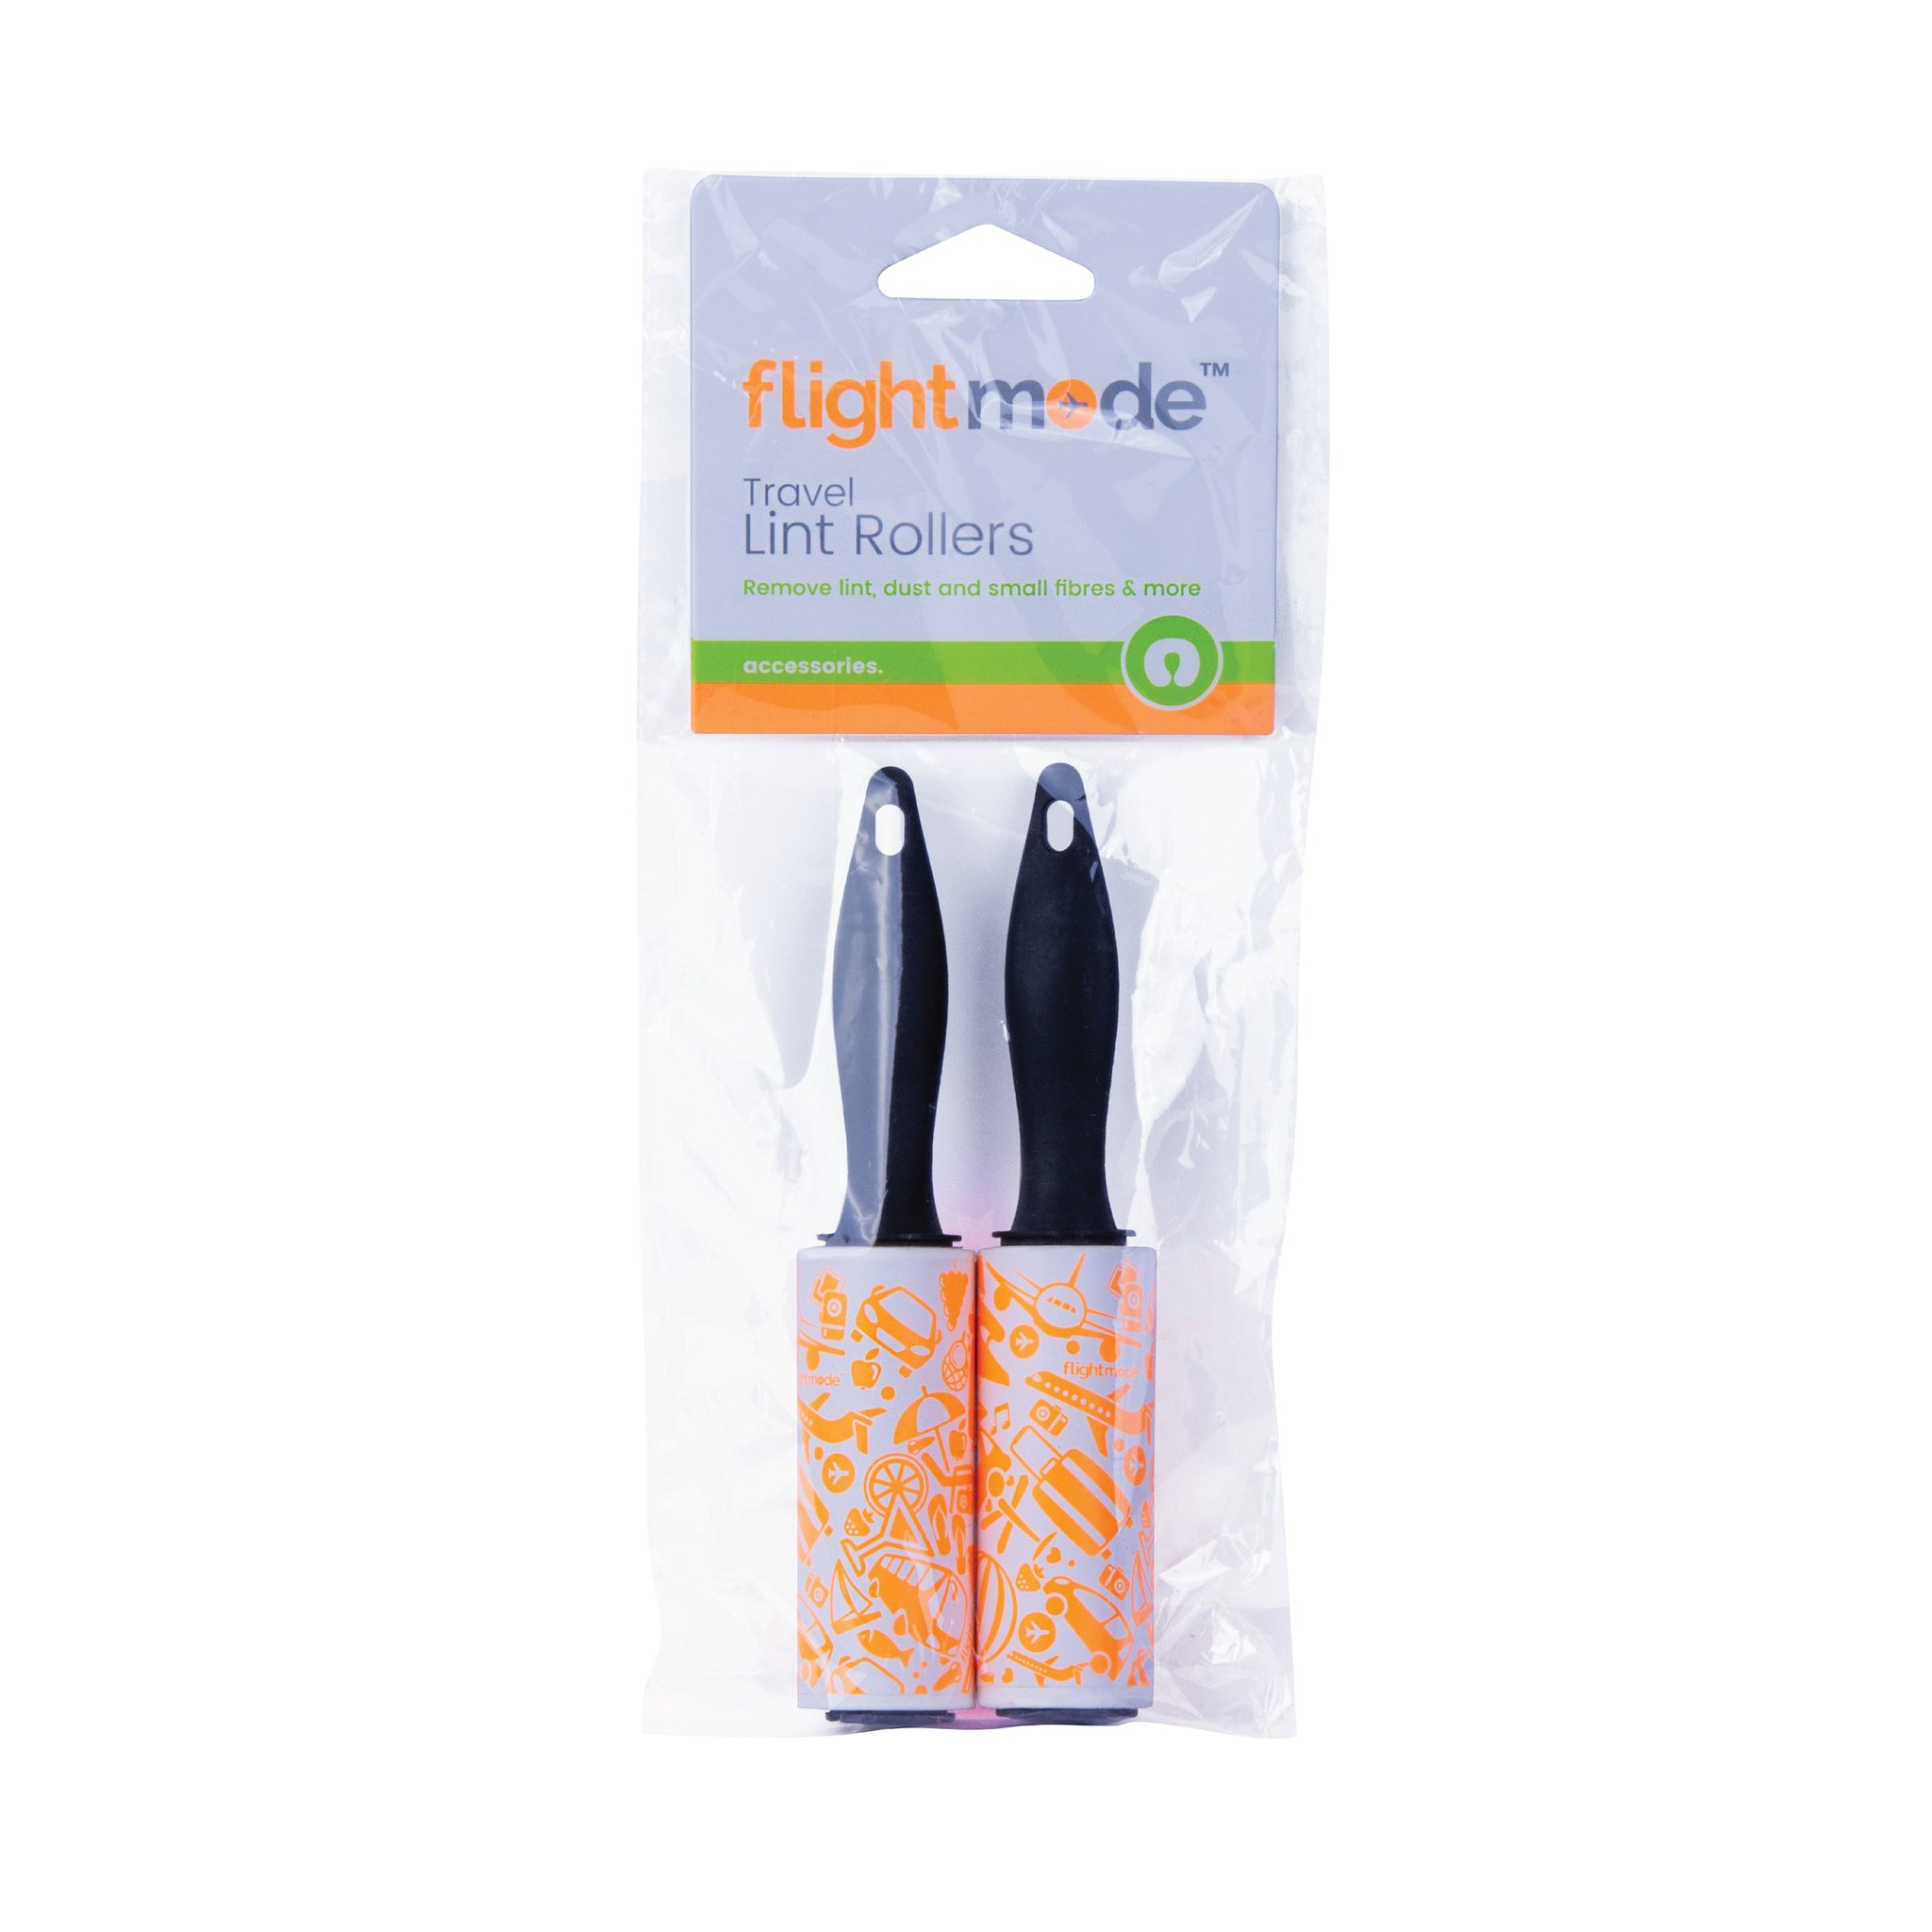 Flightmode Lint Rollers 2 Pack - These Travel size Lint Rollers are super convenient and perfect for carry-on luggage. The compact size makes them perfect for travelling, so keep one in your luggage, back pack or handbag to eliminate unsightly lint whenever necessary. Includes 30 perforated adhesive sheets per roller that are easy to remove.